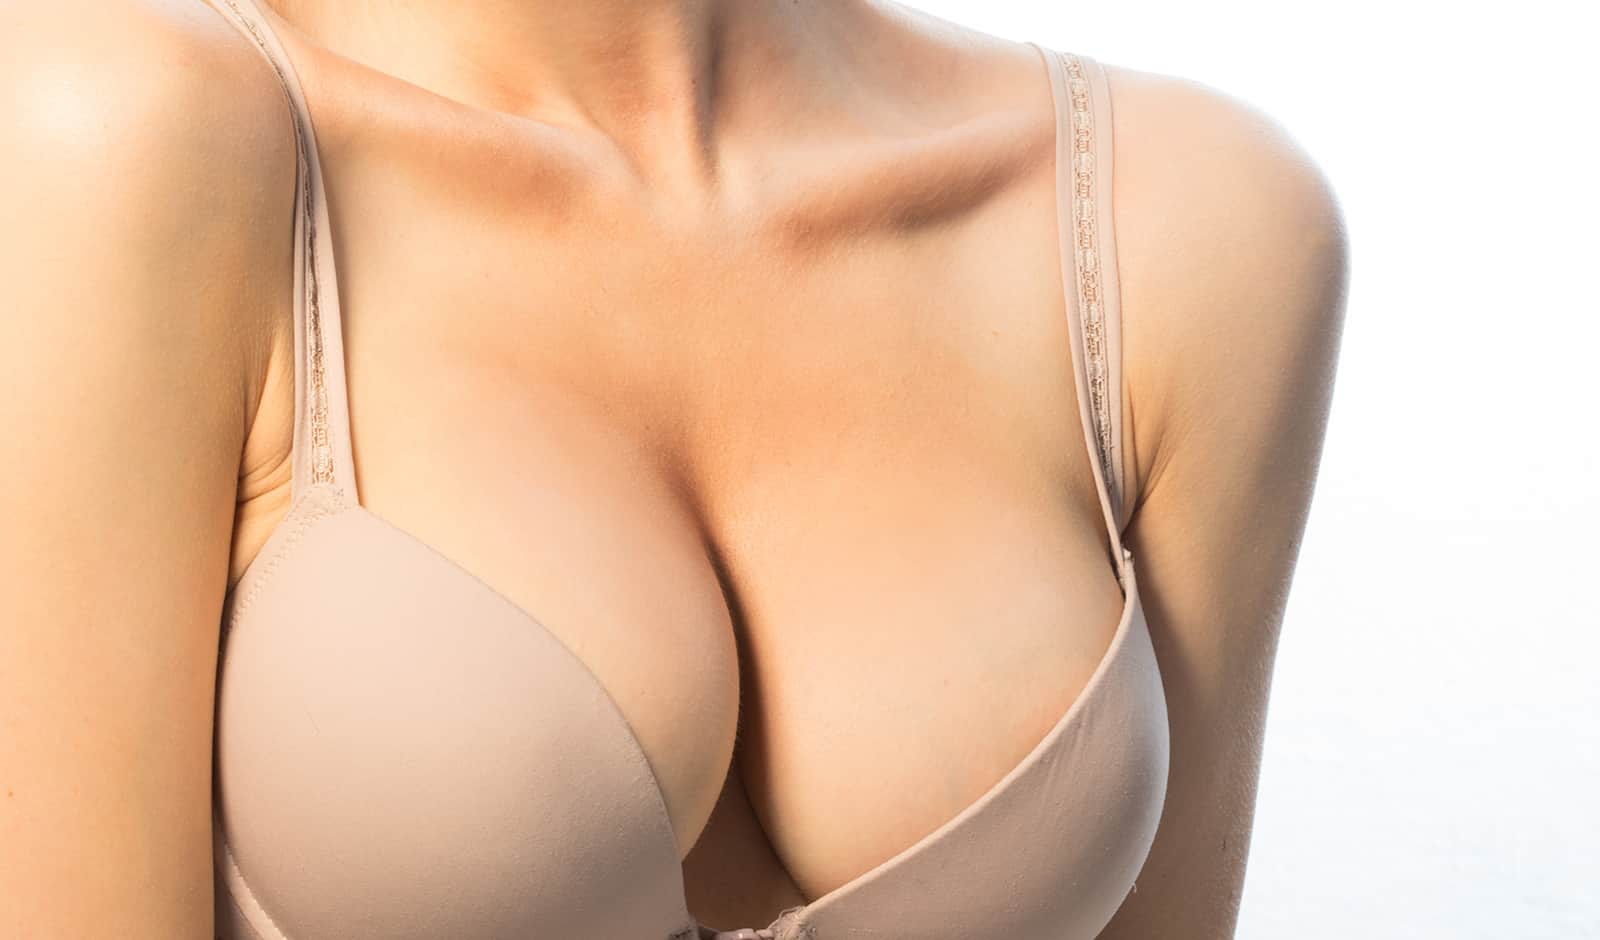 7 Foods that are Good for Your Breasts